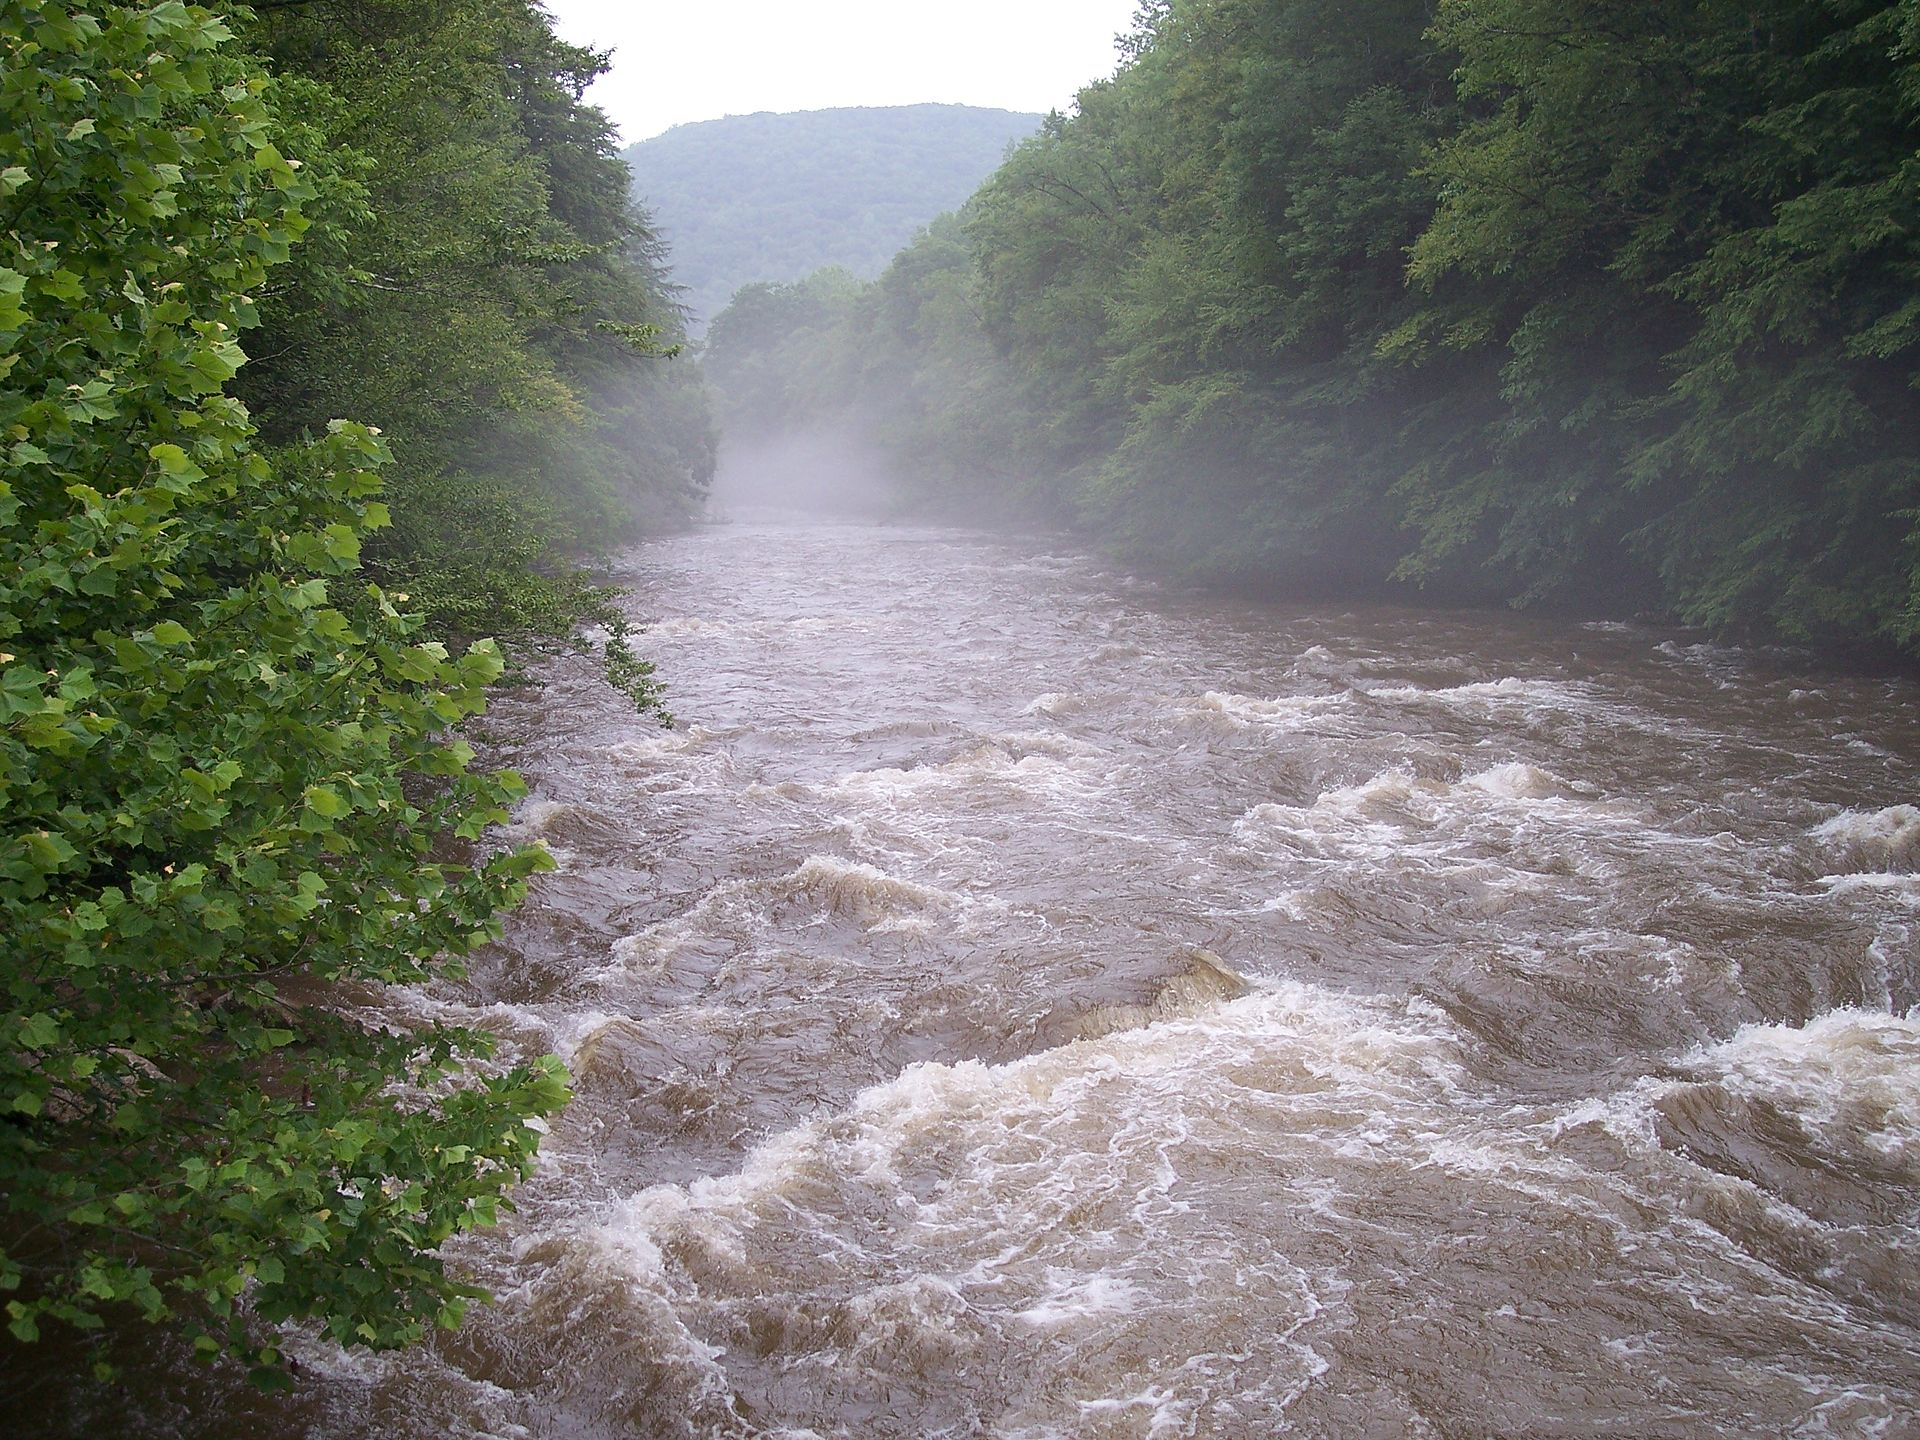 Cranberry river west virginia wikipedia for Fly fishing west virginia